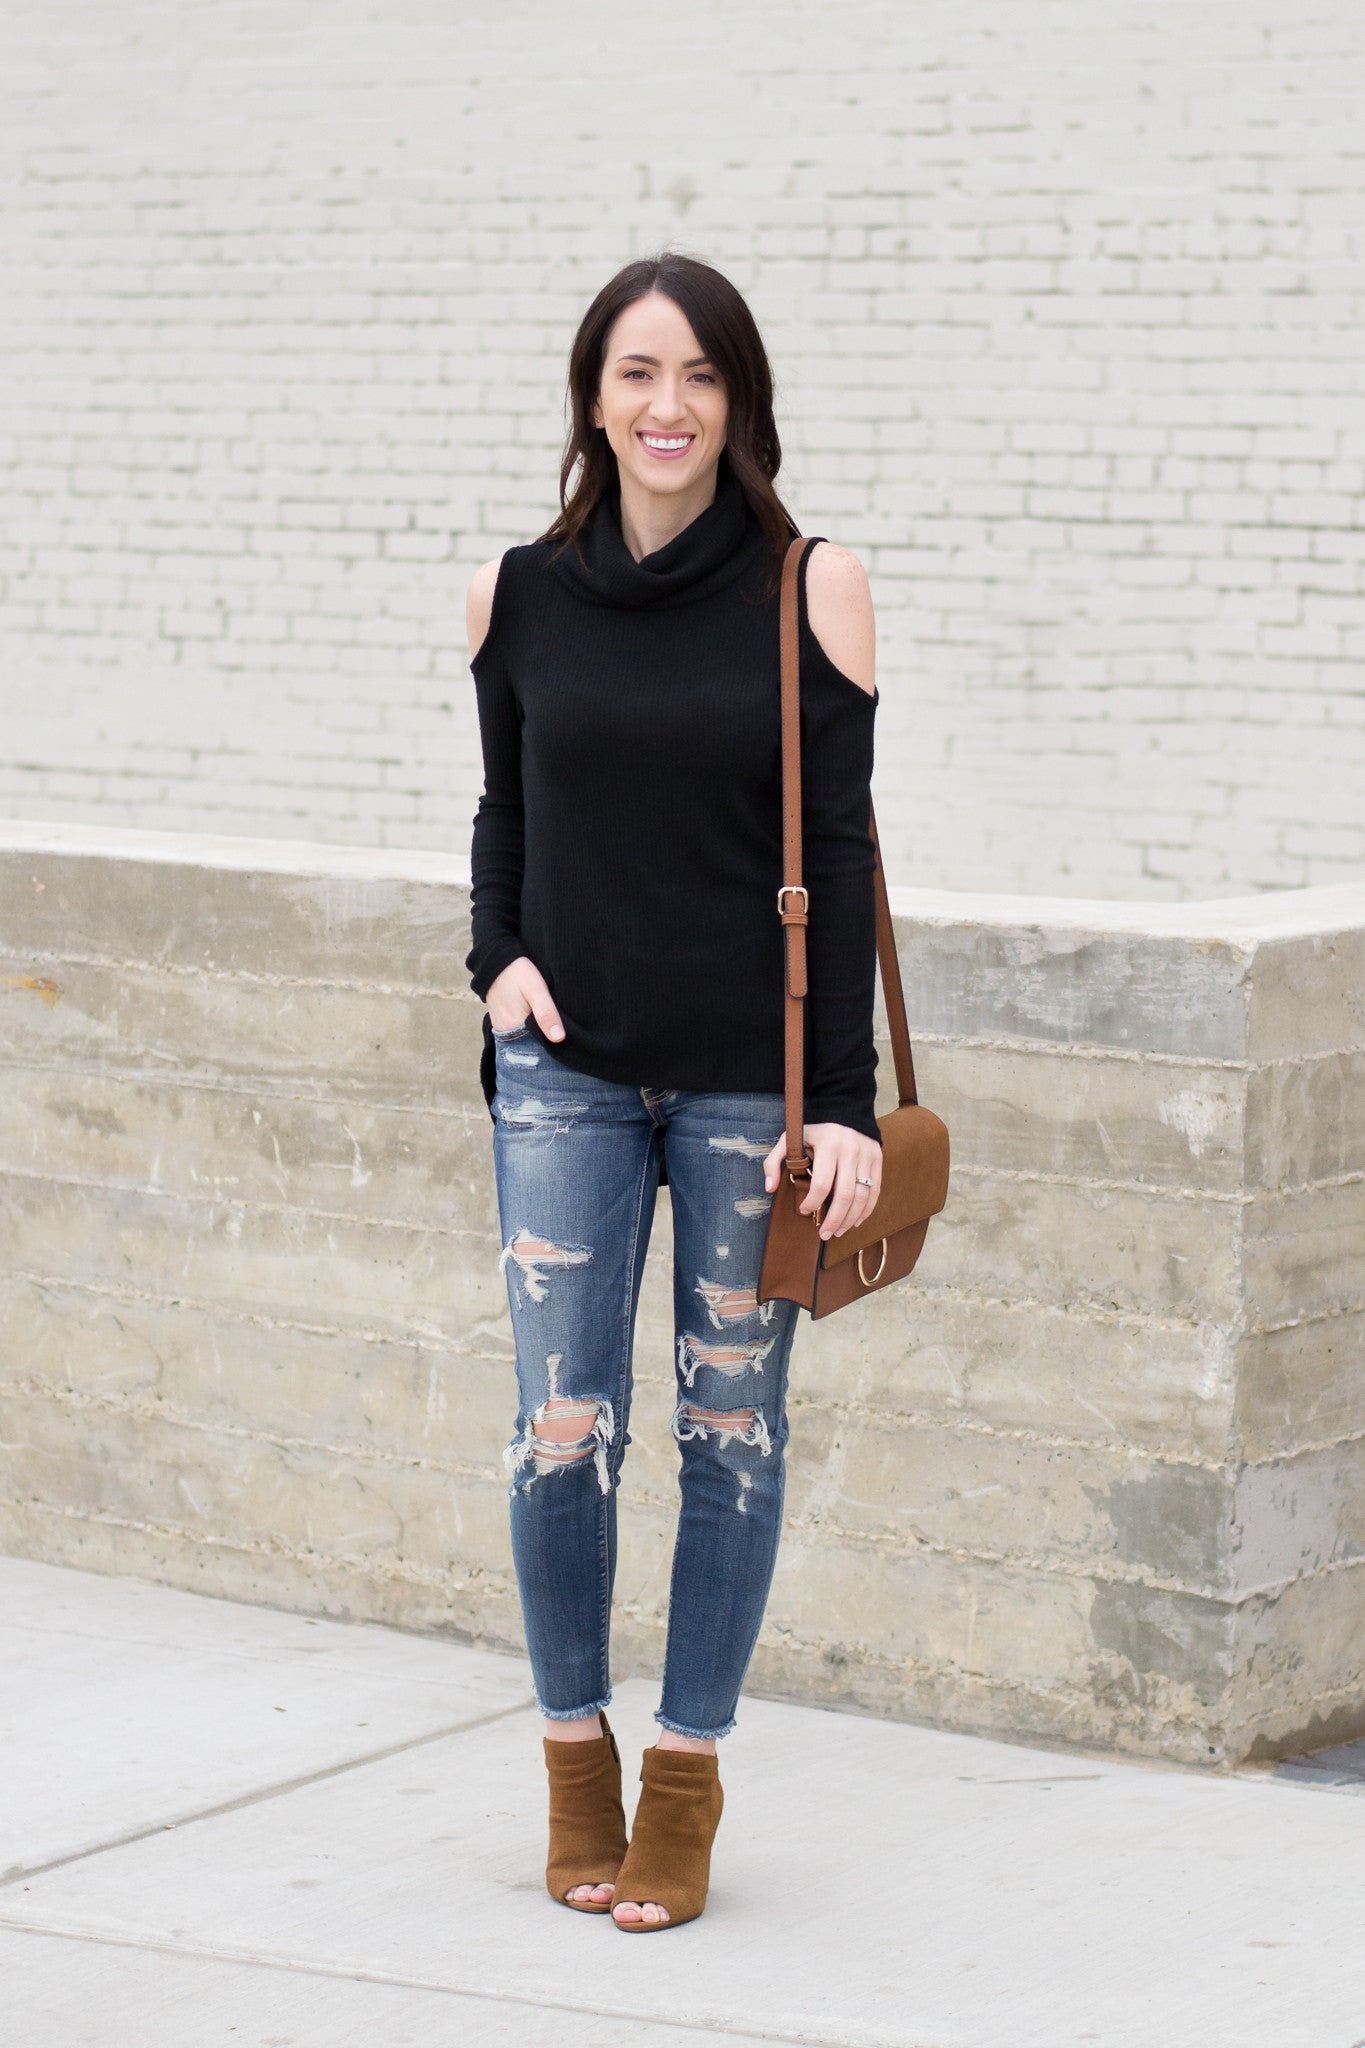 How to Style a Black Open Shoulder Top